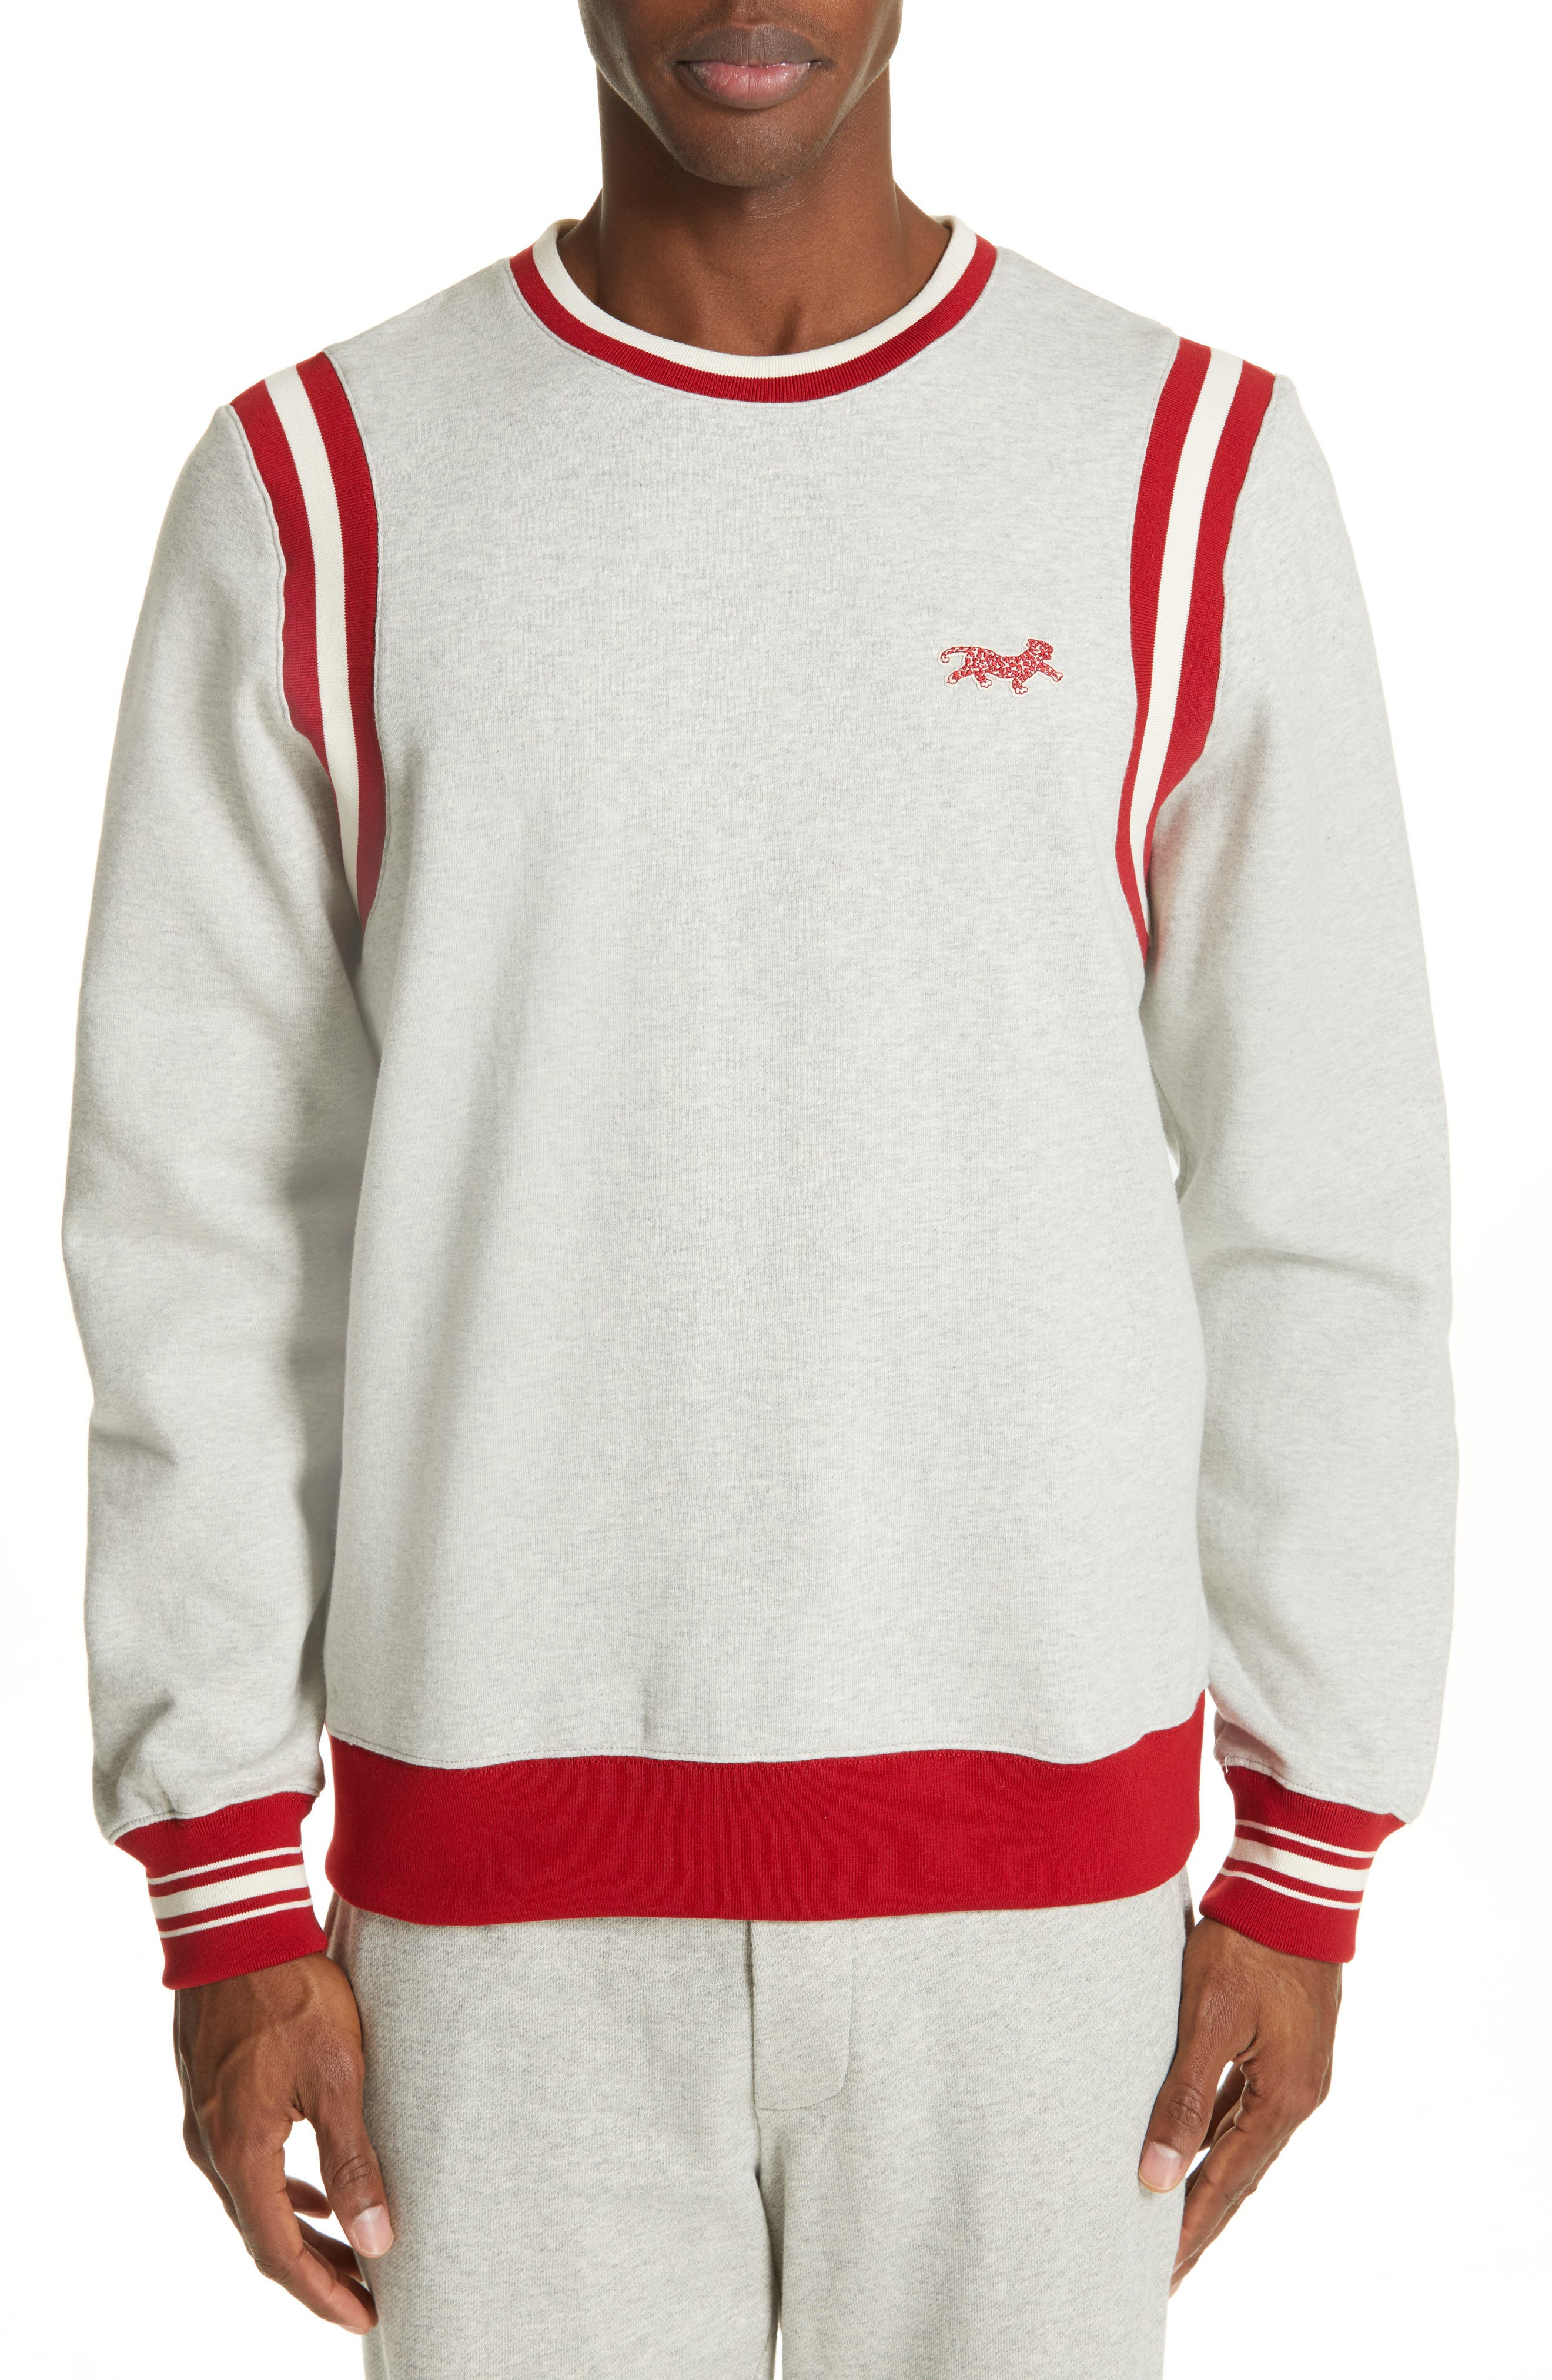 OVADIA & SONS Varsity Sweatshirt, Main, color, HEATHER GREY/RED